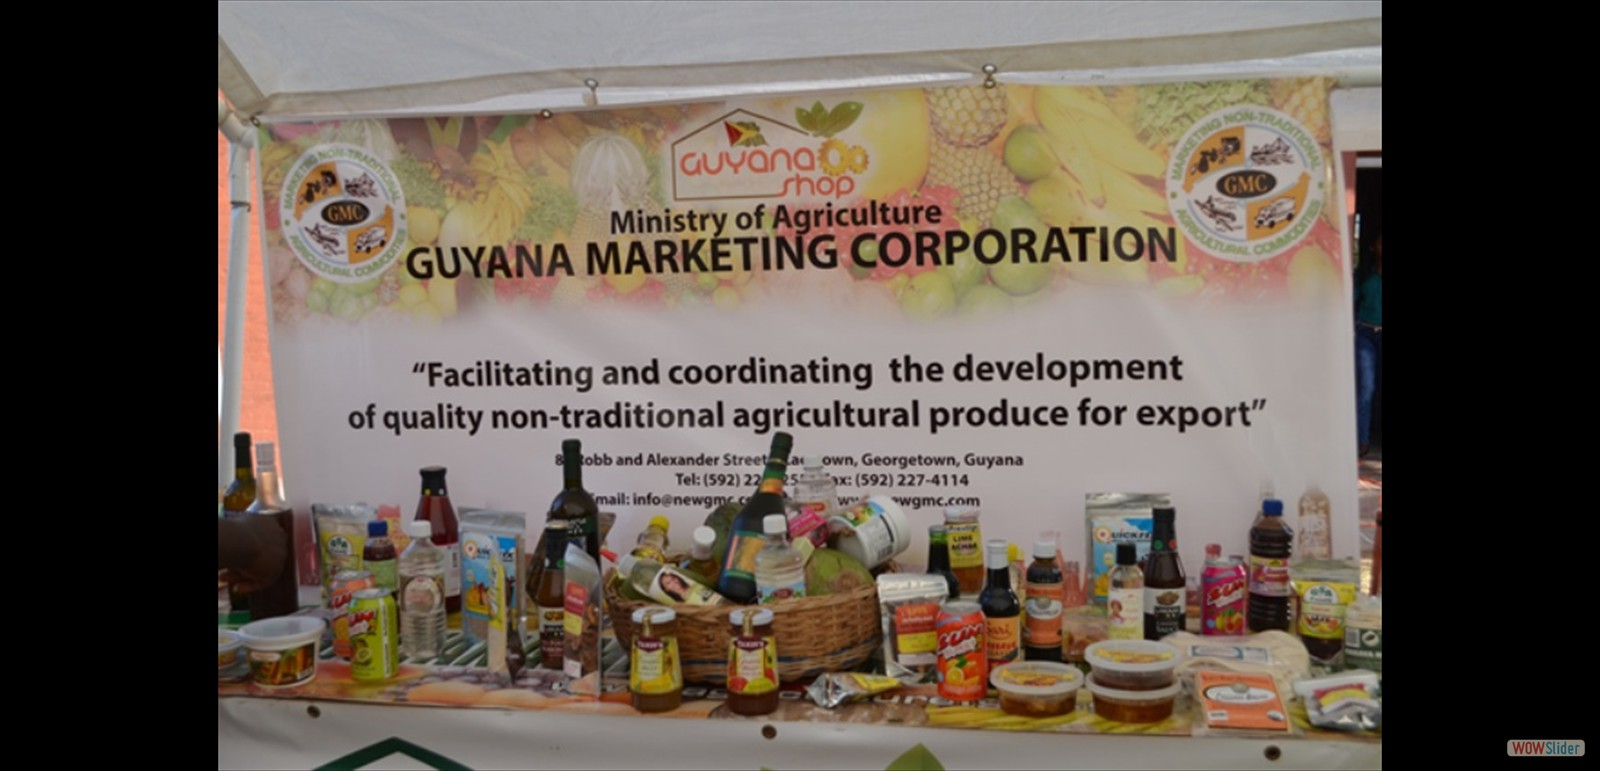 Some of the local products on display at the Guyana Marketing Corporation's booth during the MMA open day exhibition